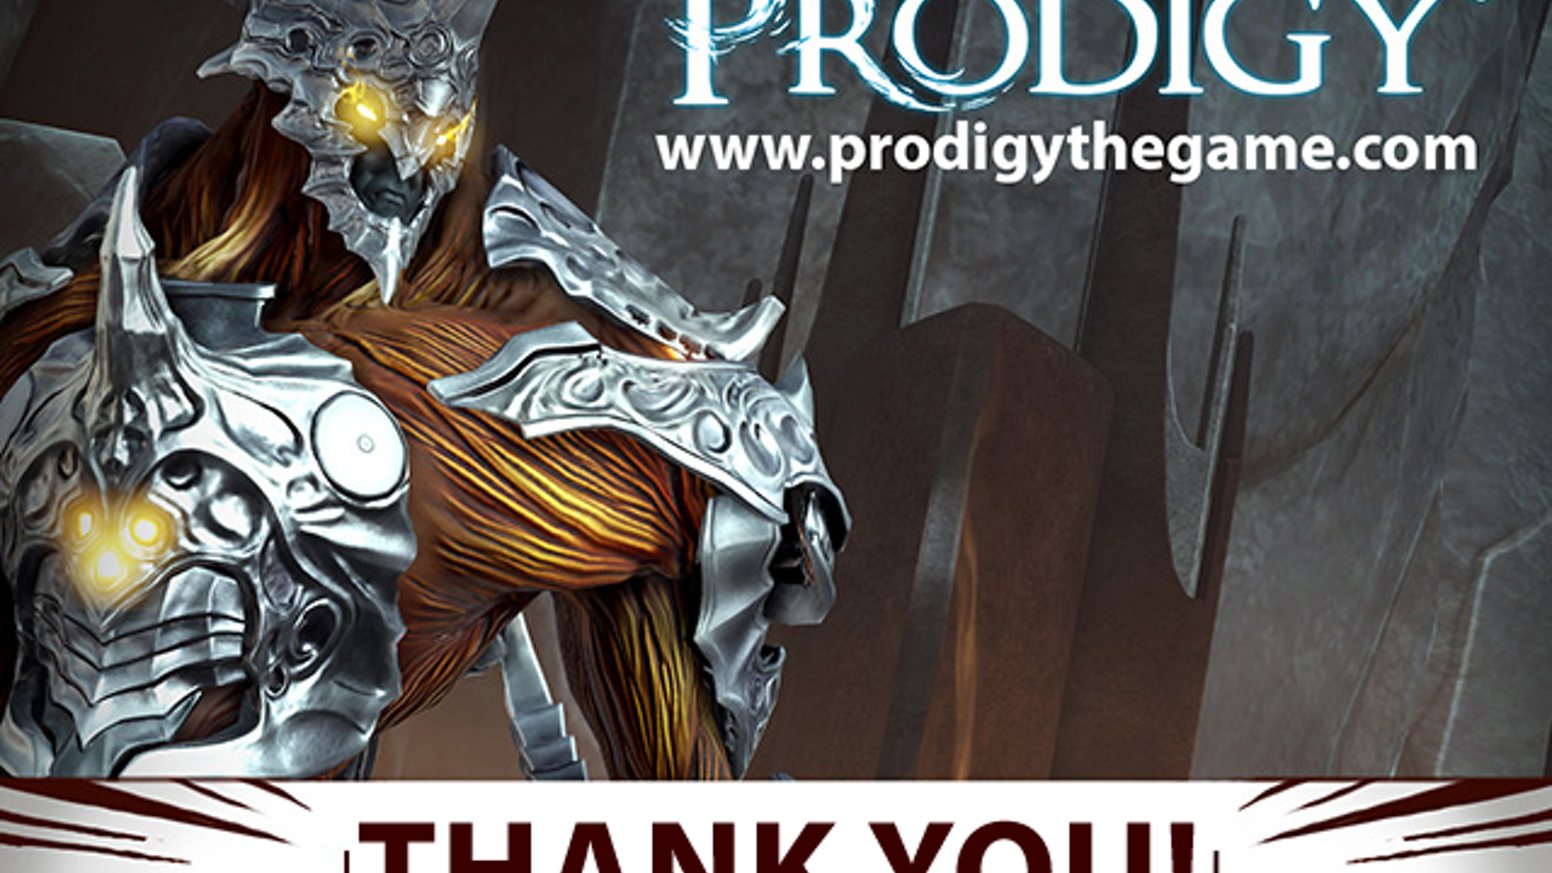 Prodigy is a tactical RPG with figurines, a new way to play that we will create with you. Thank you so much for your support!